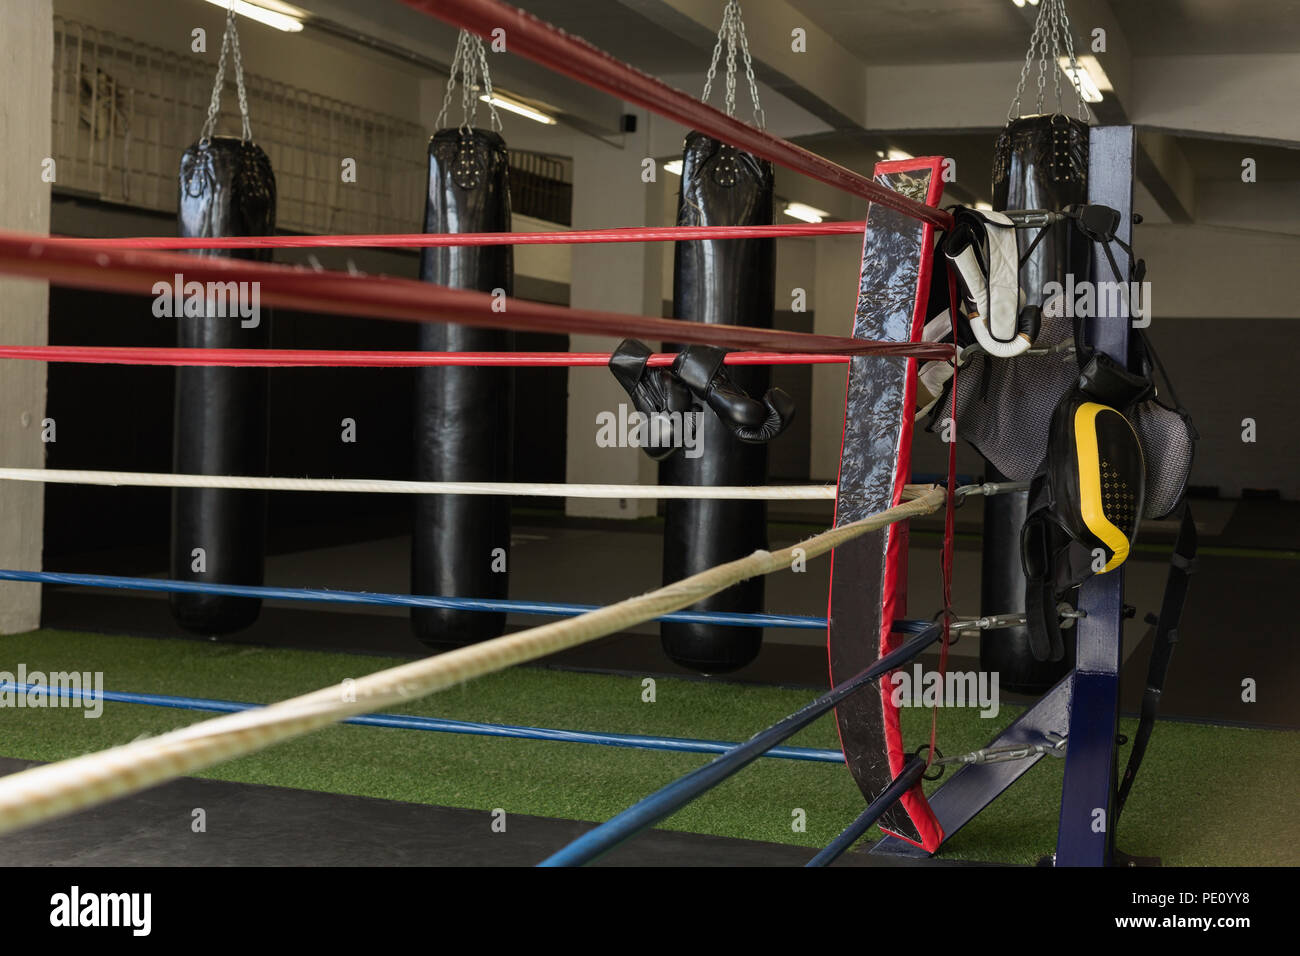 Punching bag and boxing equipments on the boxing ring - Stock Image